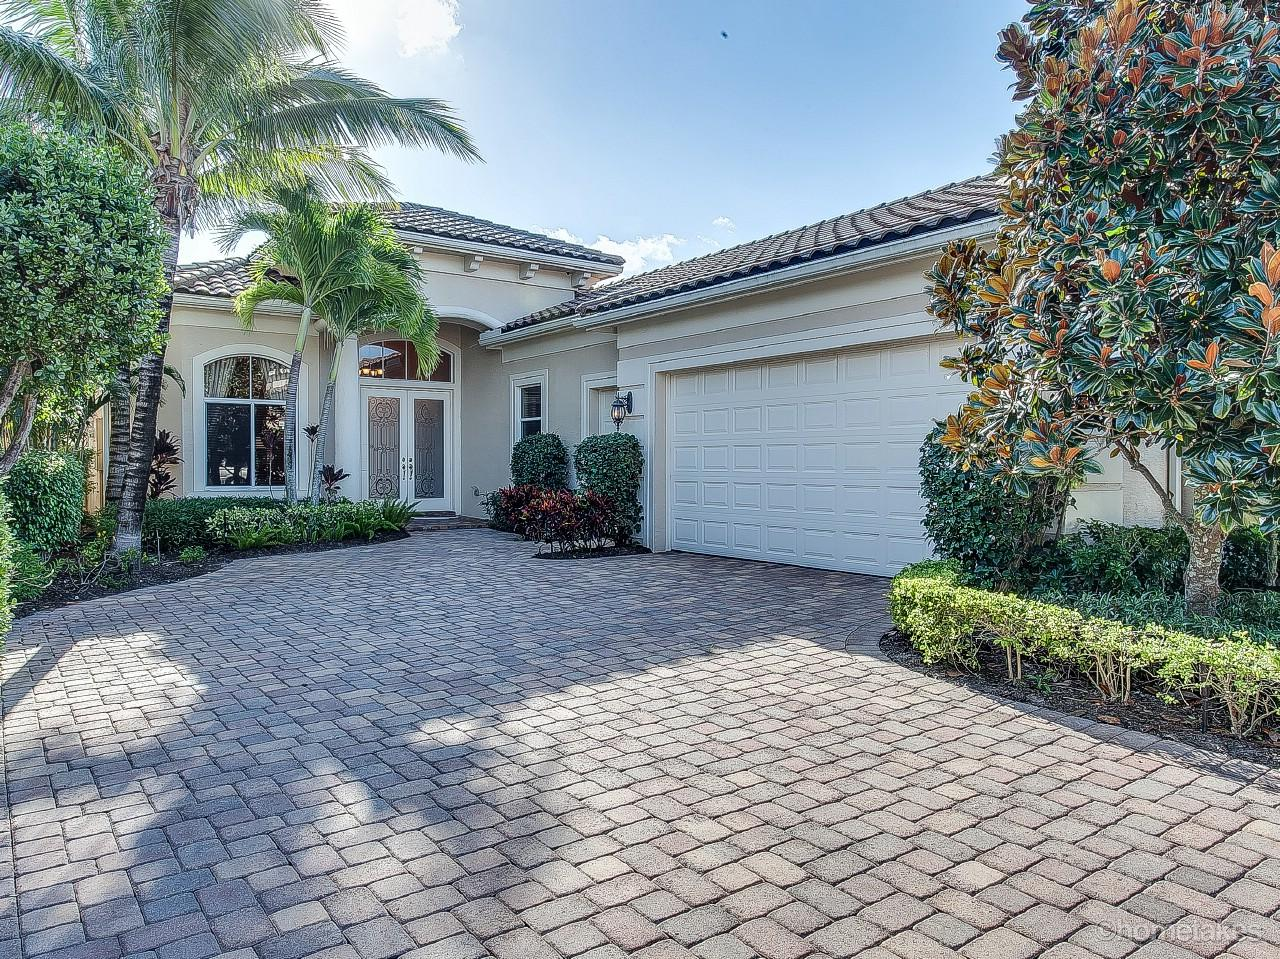 116 Bianca Drive, Palm Beach Gardens, Florida 33418, 3 Bedrooms Bedrooms, ,3.1 BathroomsBathrooms,F,Single family,Bianca,RX-10517743